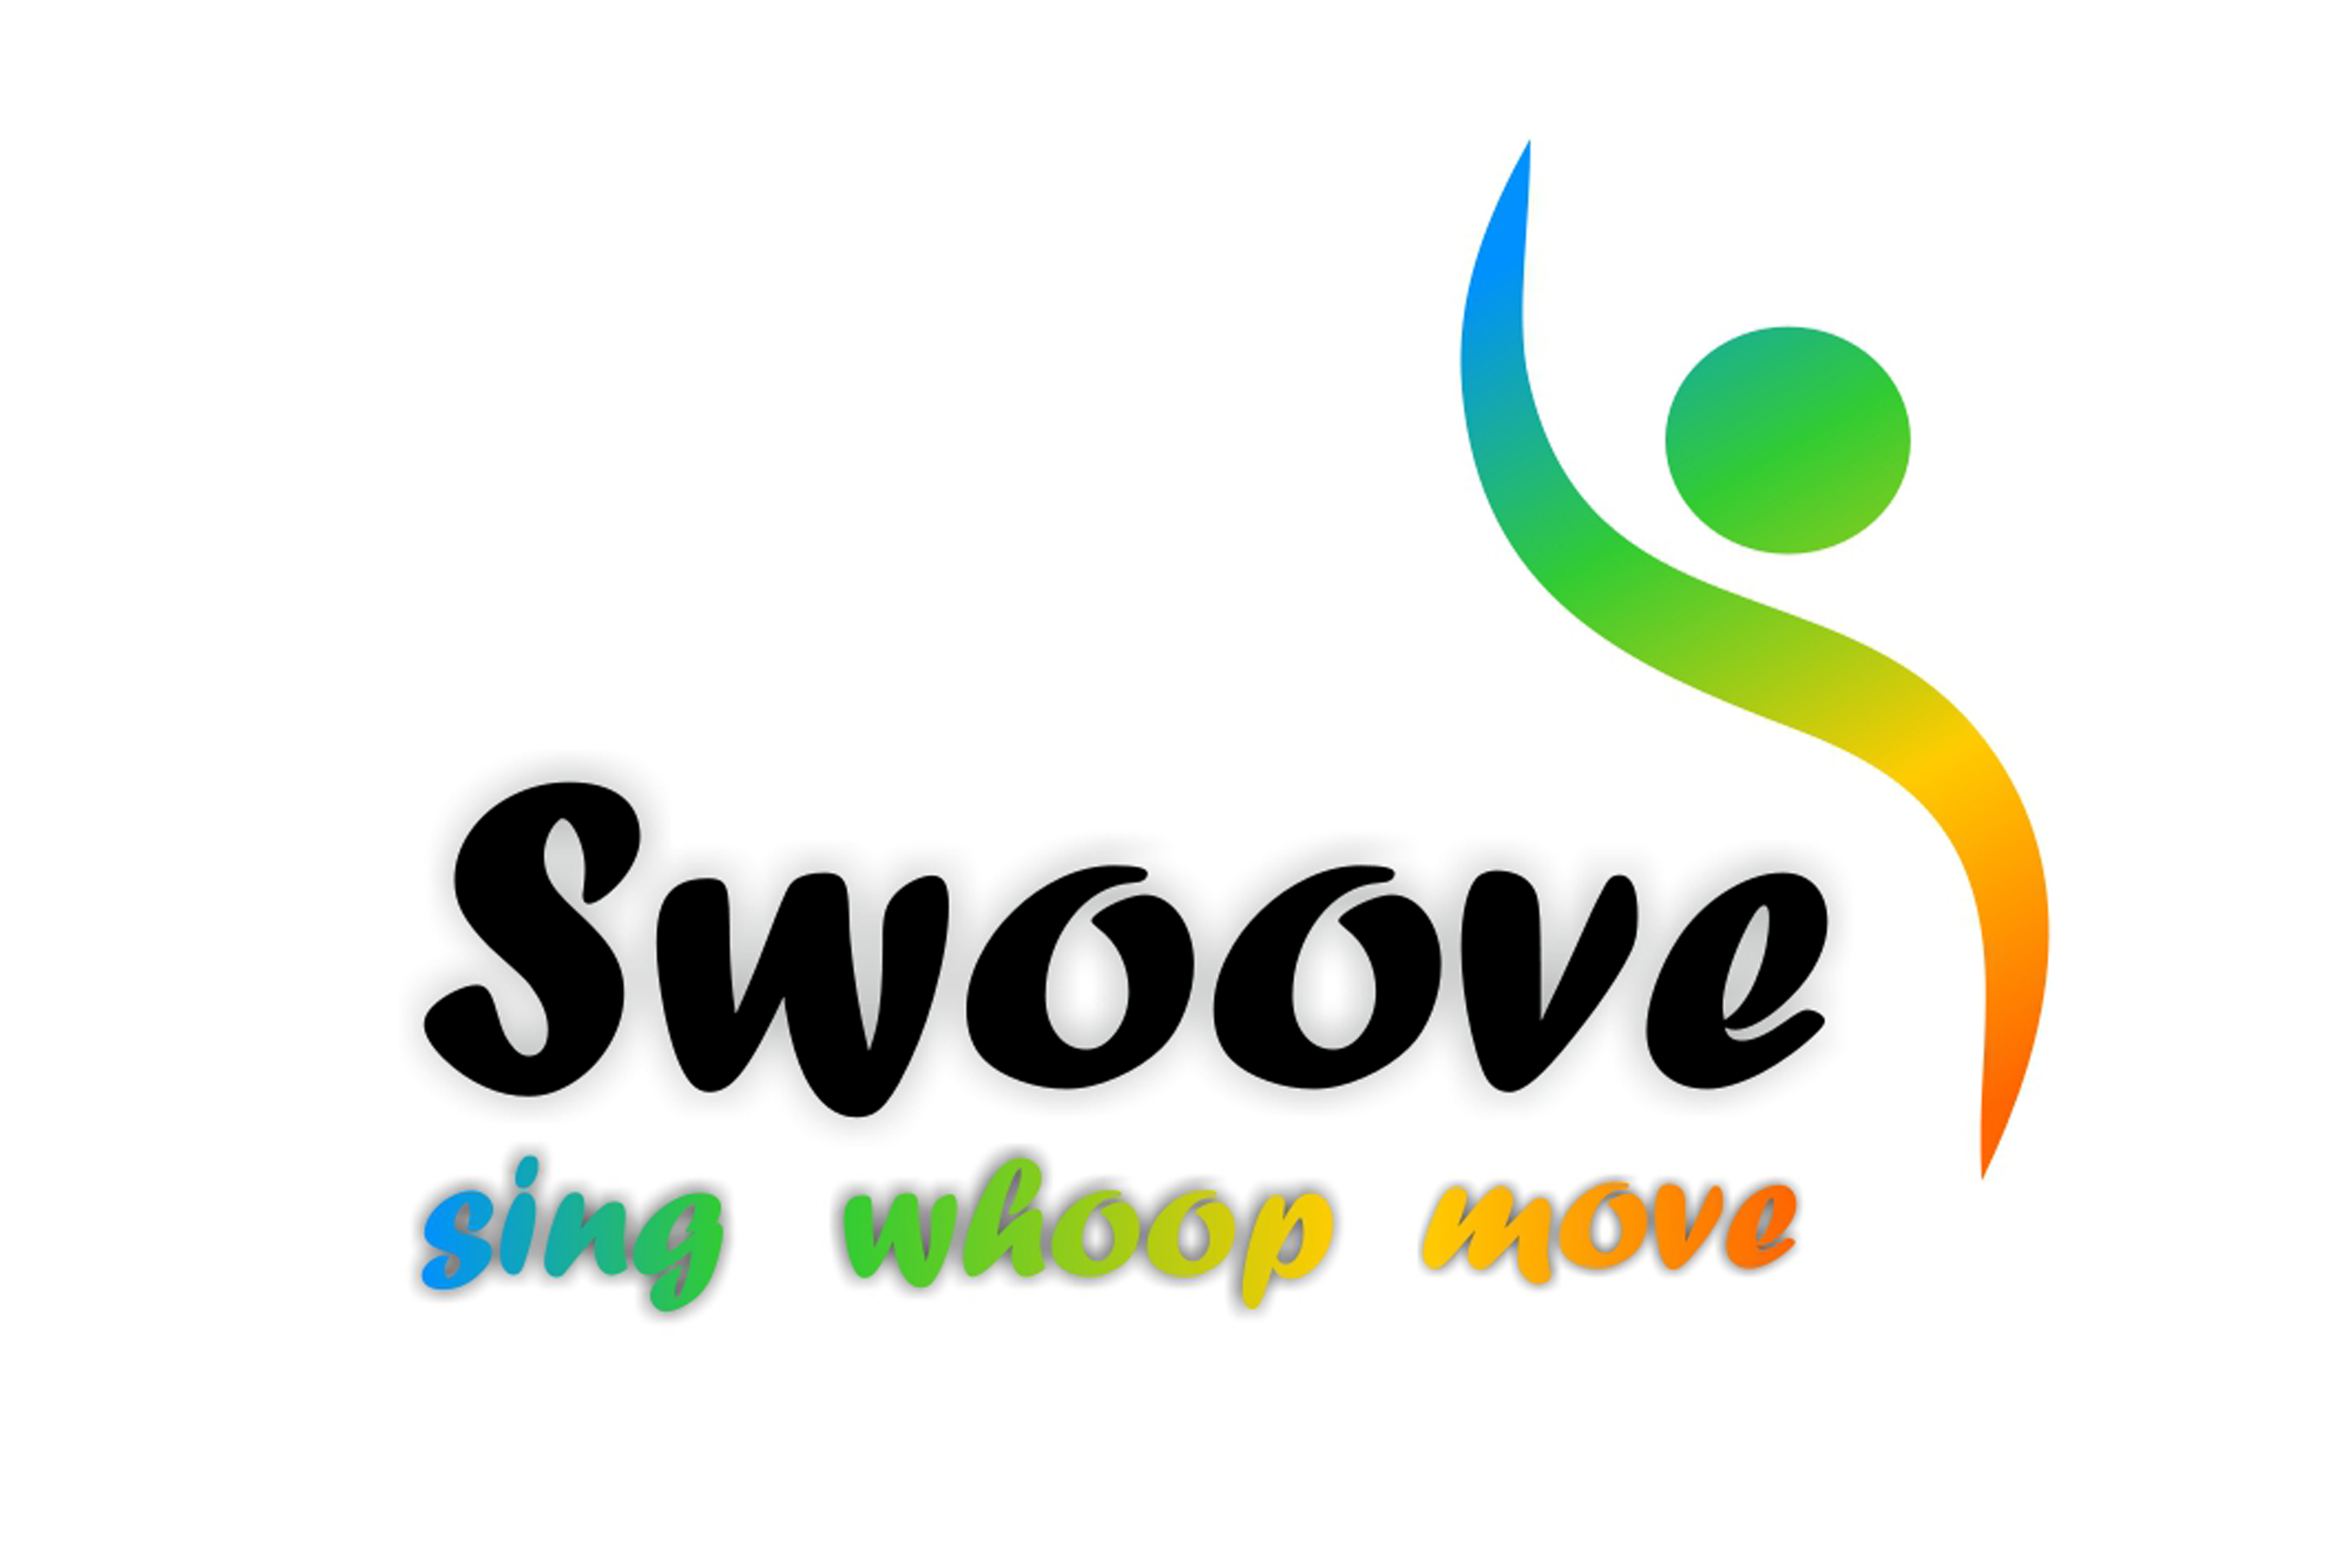 Swoove is definitely here